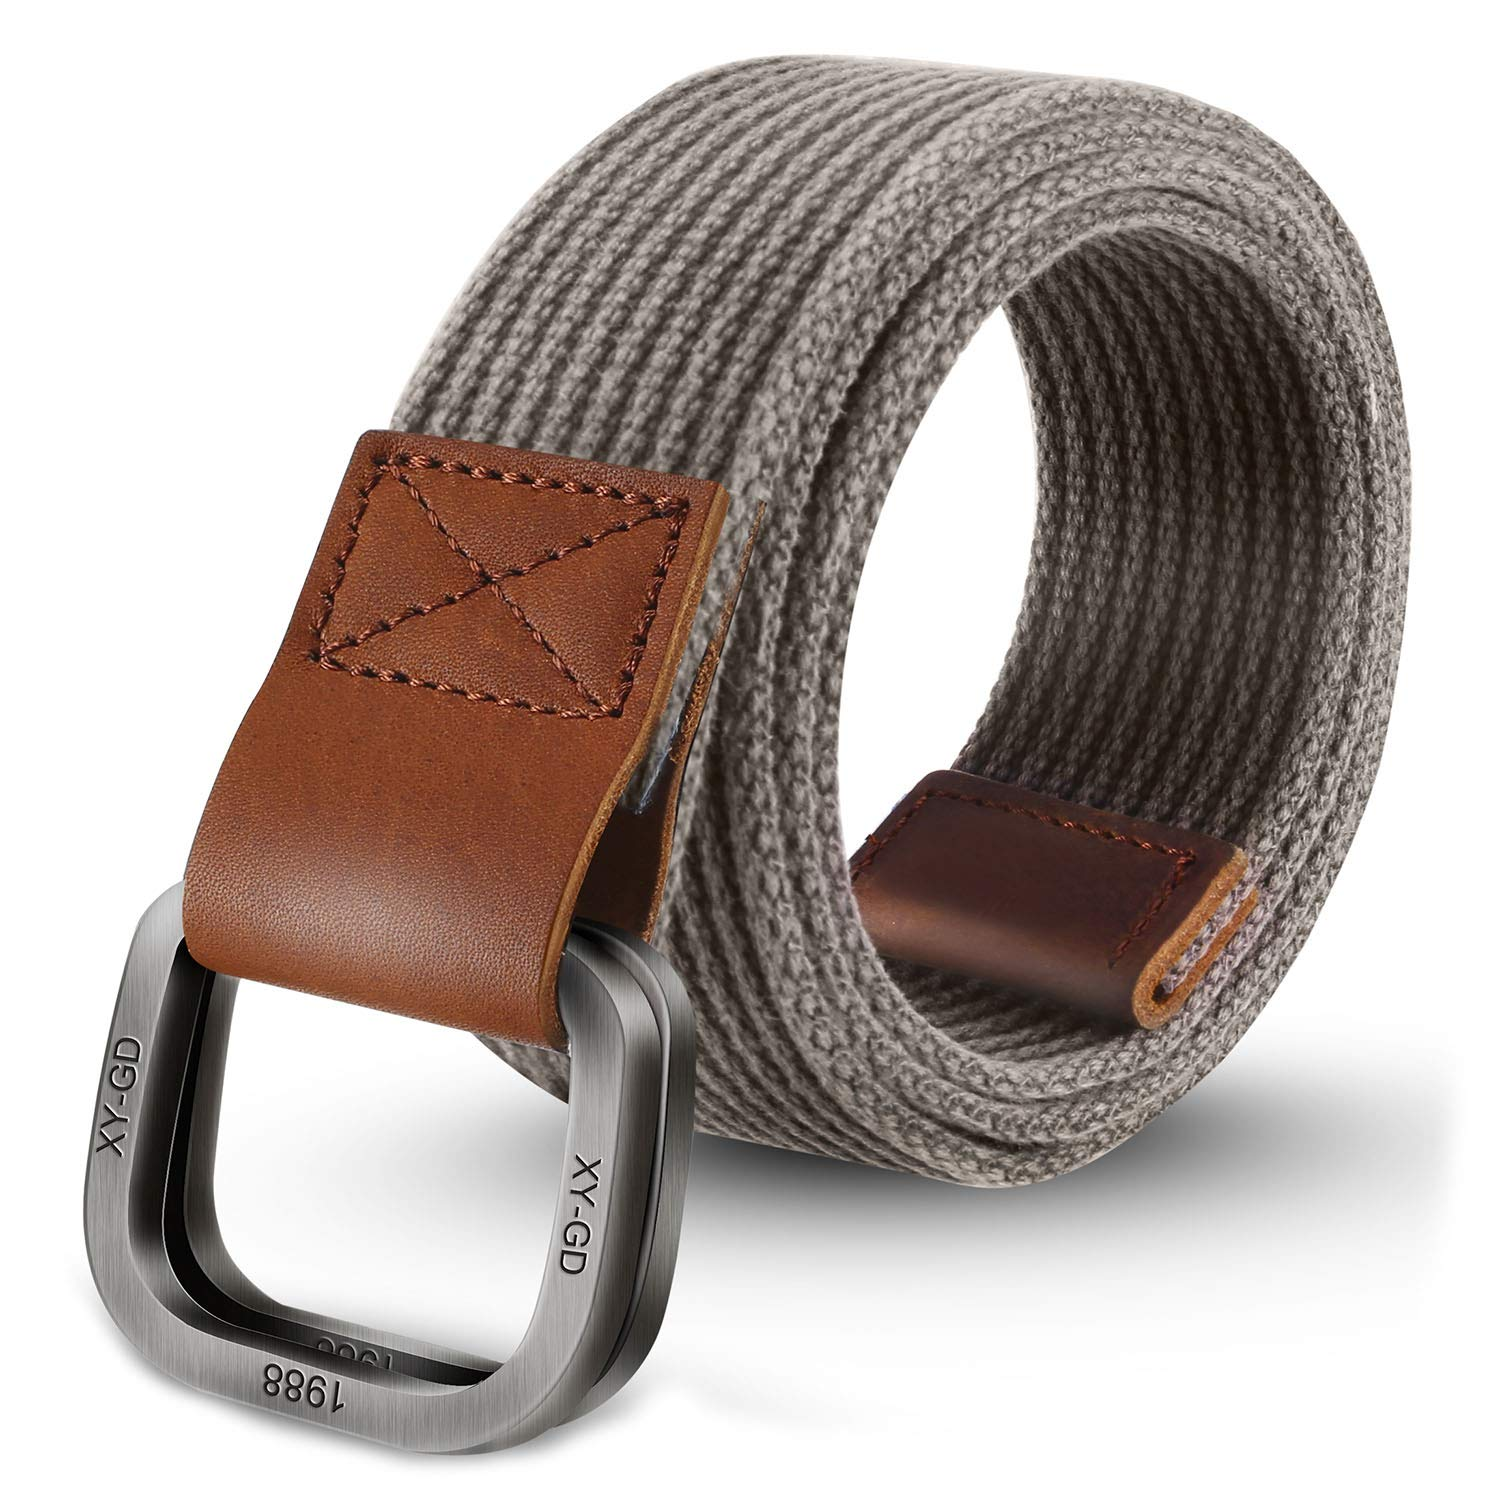 def18d419a9 ITIEZY Men s Canvas Belt Military Style Double D-Ring Buckle Casual Webbing  Belt at Amazon Men s Clothing store